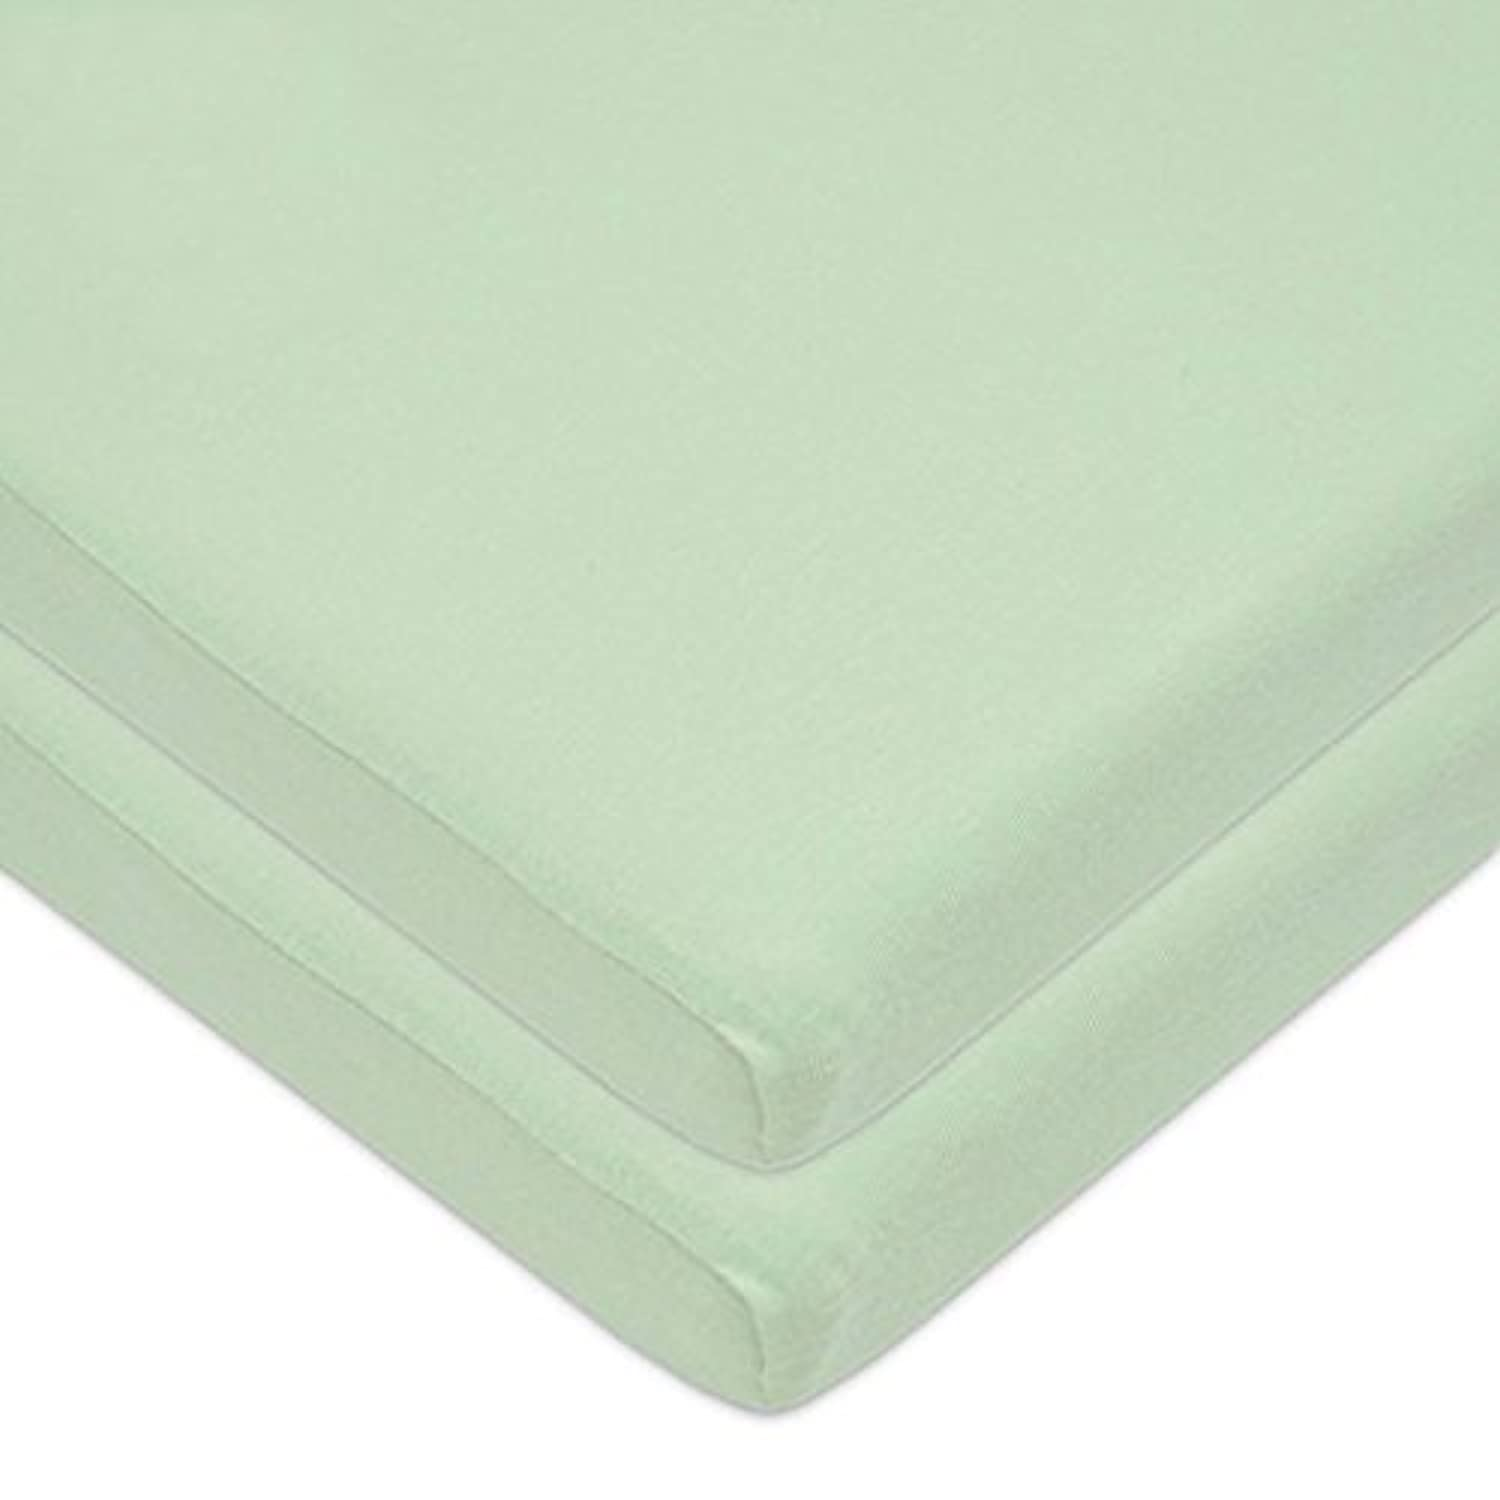 American Baby Company 2 Piece 100% Cotton Value Jersey Knit Fitted Pack and Play Playard Sheet, Celery, 27 x 39 x 4 by American Baby Company